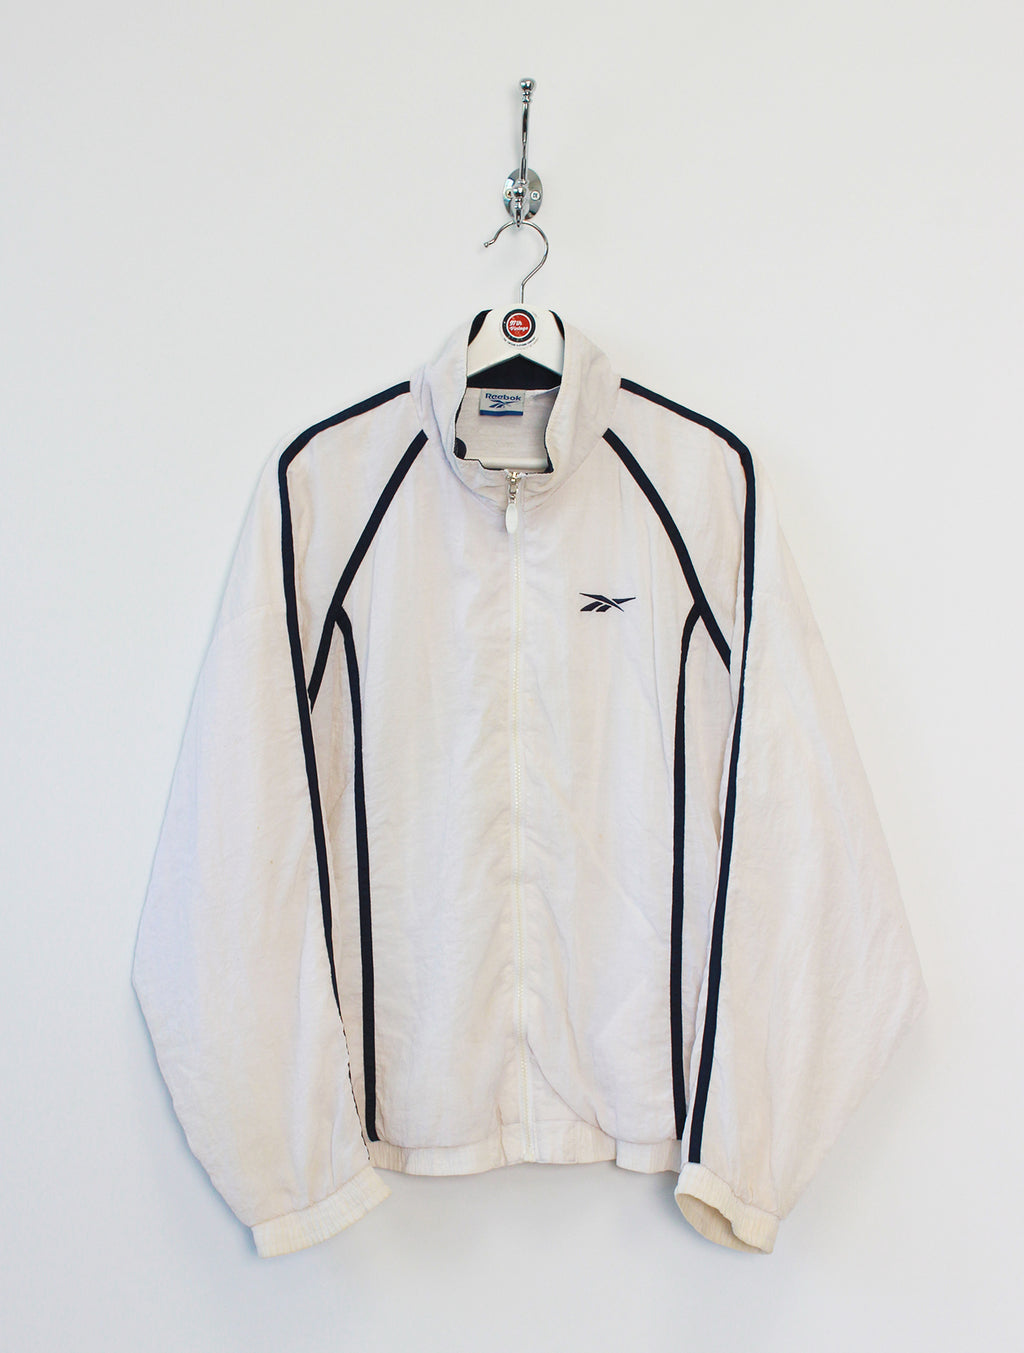 Reebok Jacket (XL)